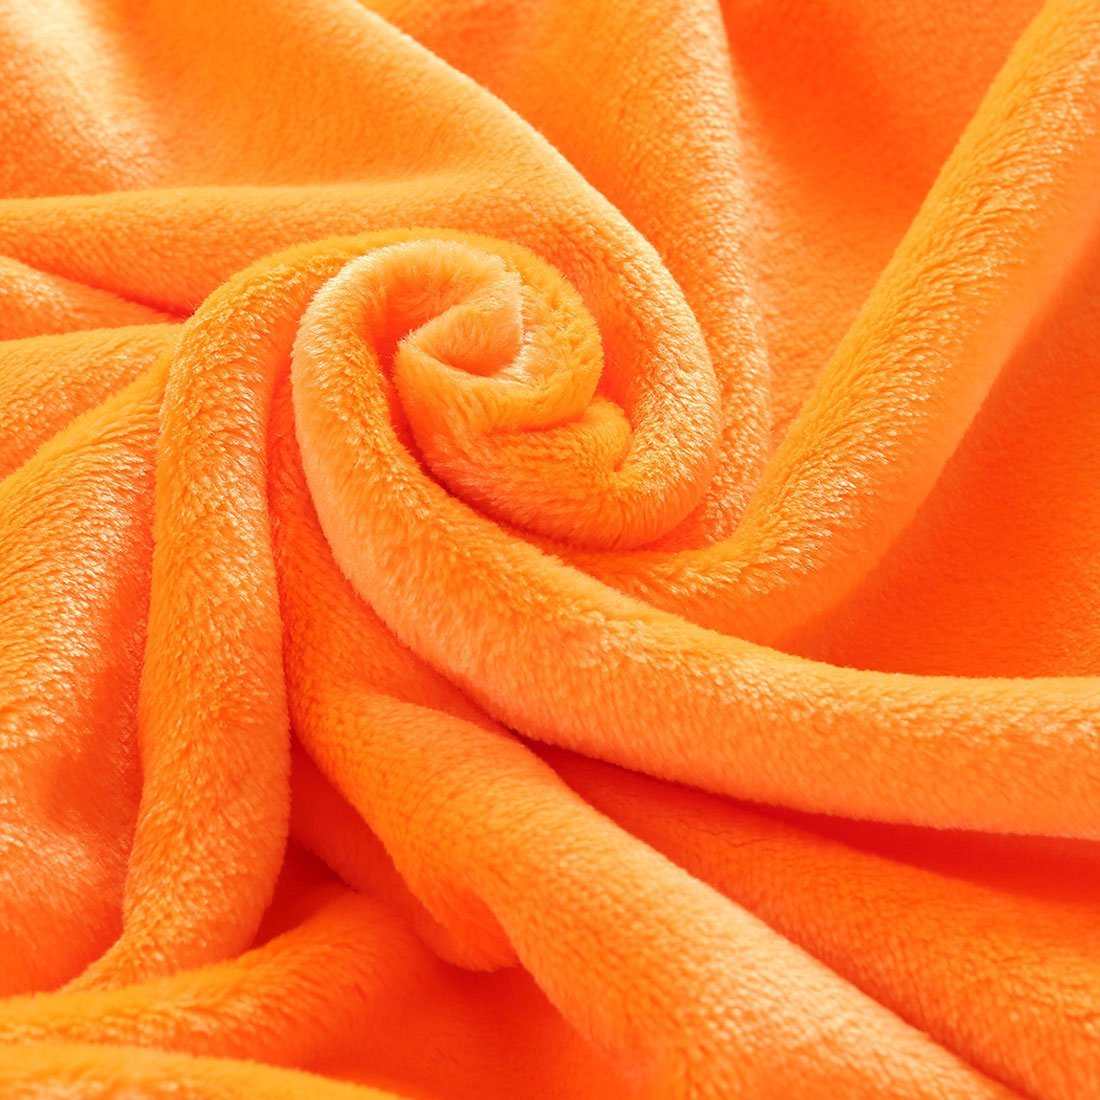 Amazon.com: eDealMax de Felpa Suave Fuzzy Throw Ligera Felpa Caliente (90inch-por-78Inch) Sofá cama King Size Manta, Naranja: Home & Kitchen